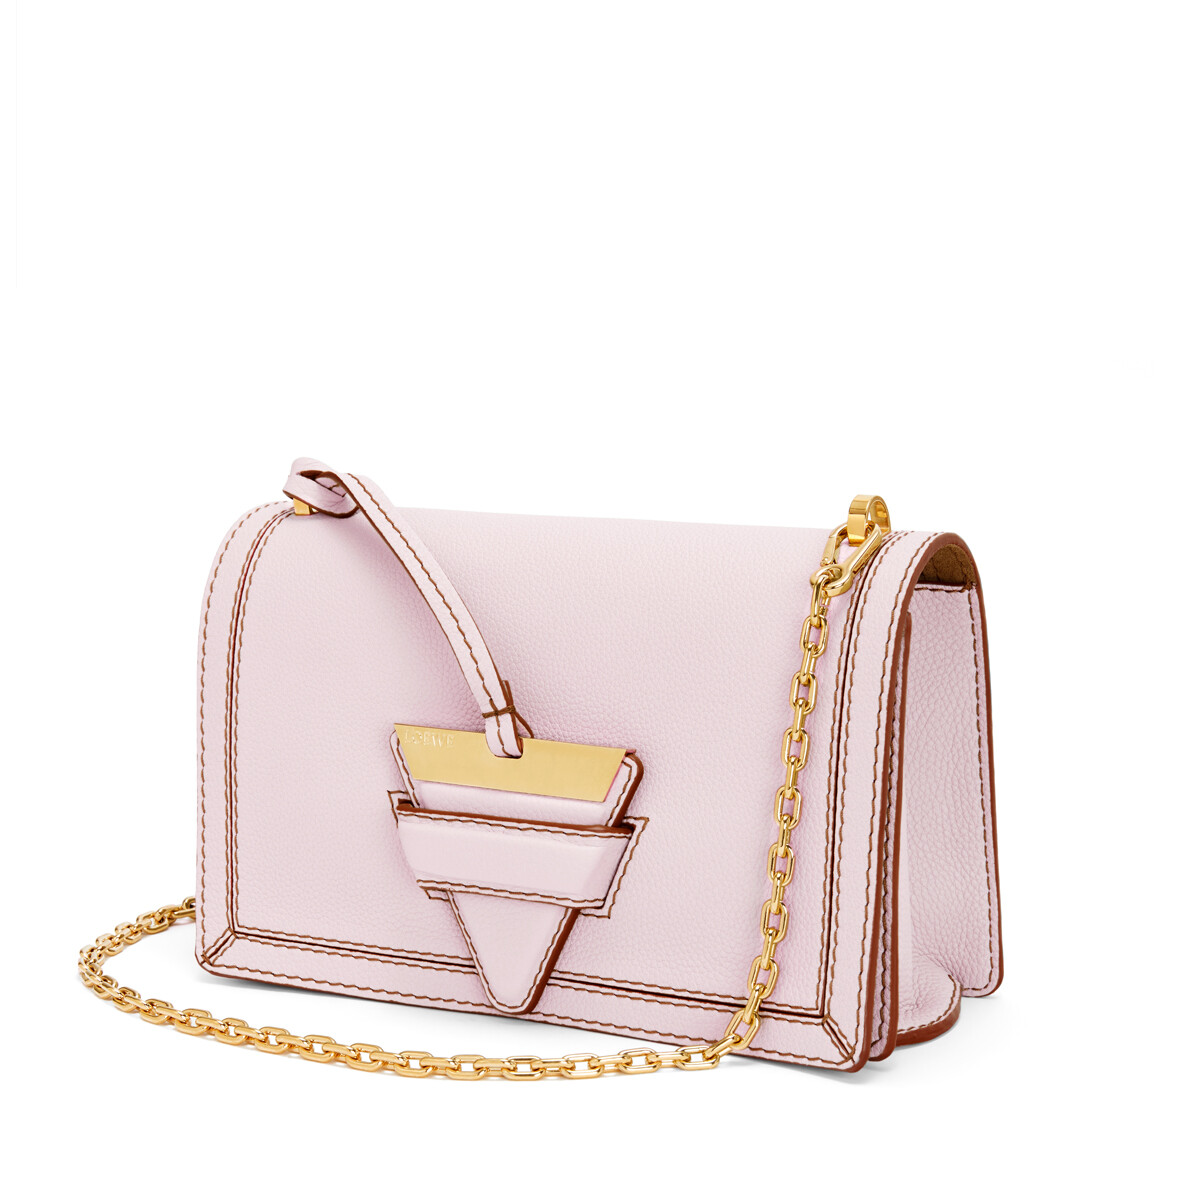 LOEWE バルセロナ ソフト バッグ Icy Pink front